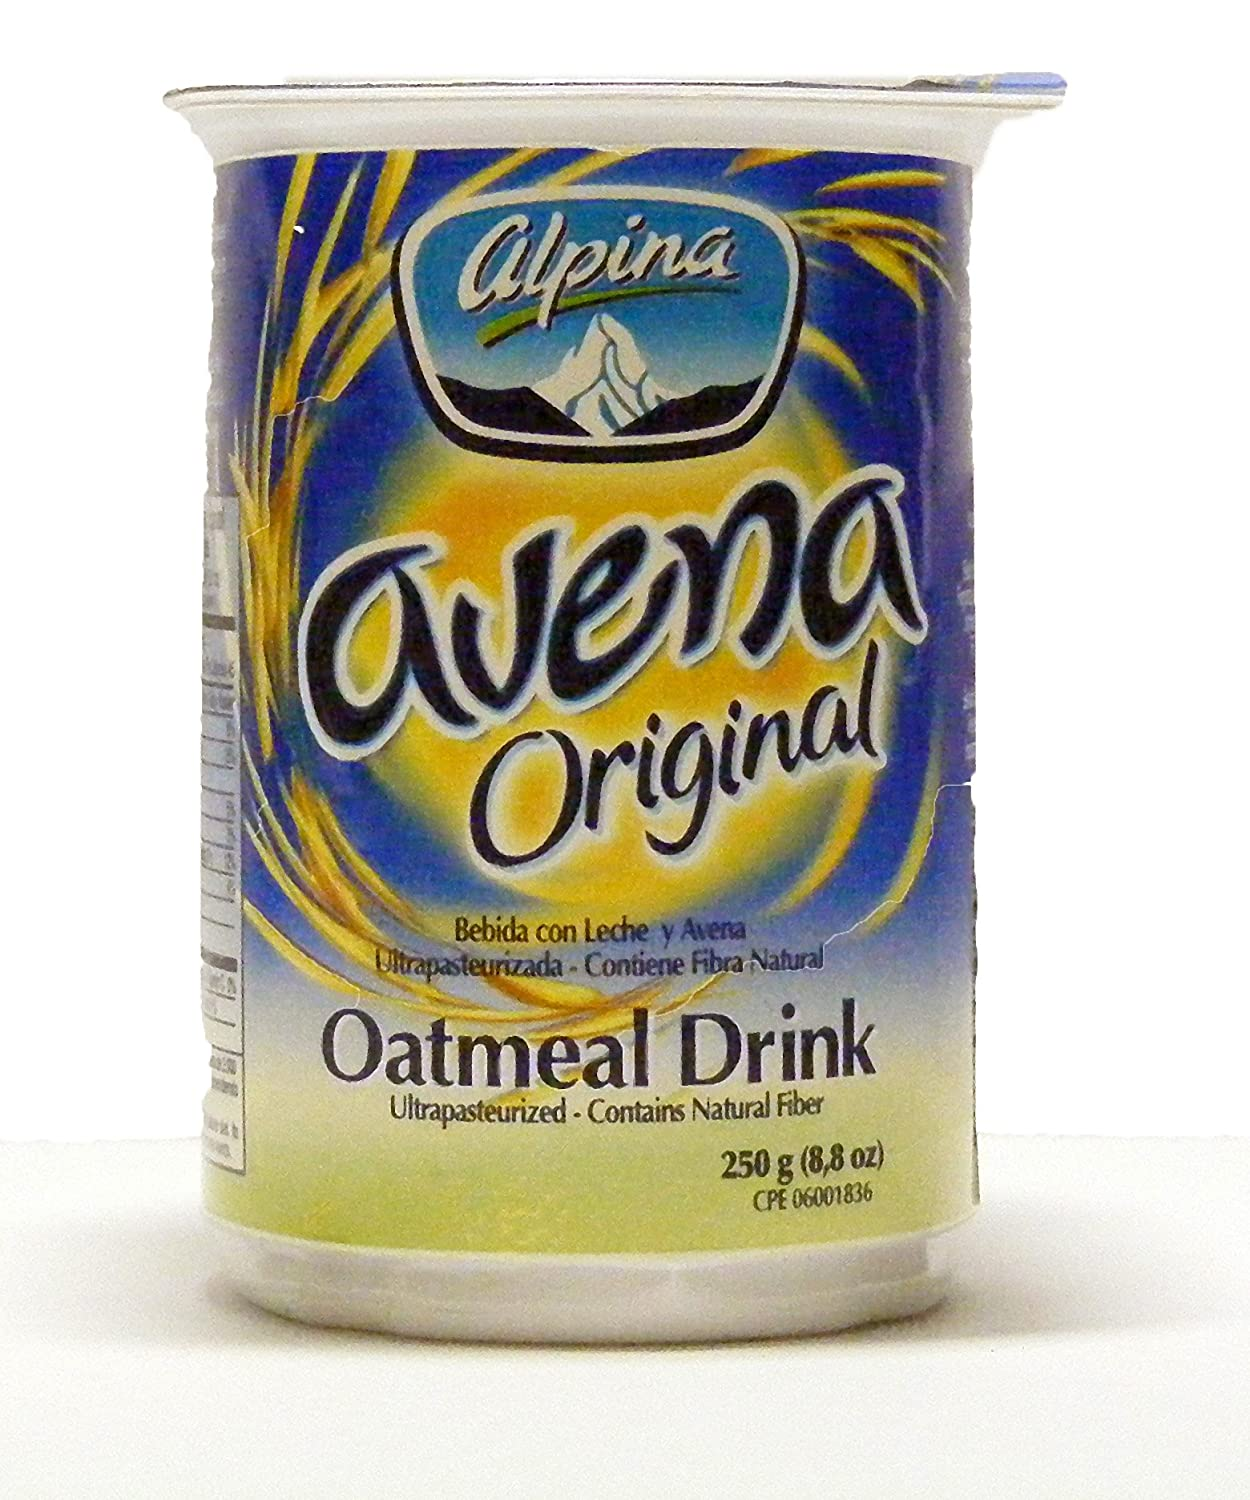 Amazon.com : Avena Sampler Pack (Original, Cinnamon, Low Fat) : Instant Breakfast Drinks : Grocery & Gourmet Food